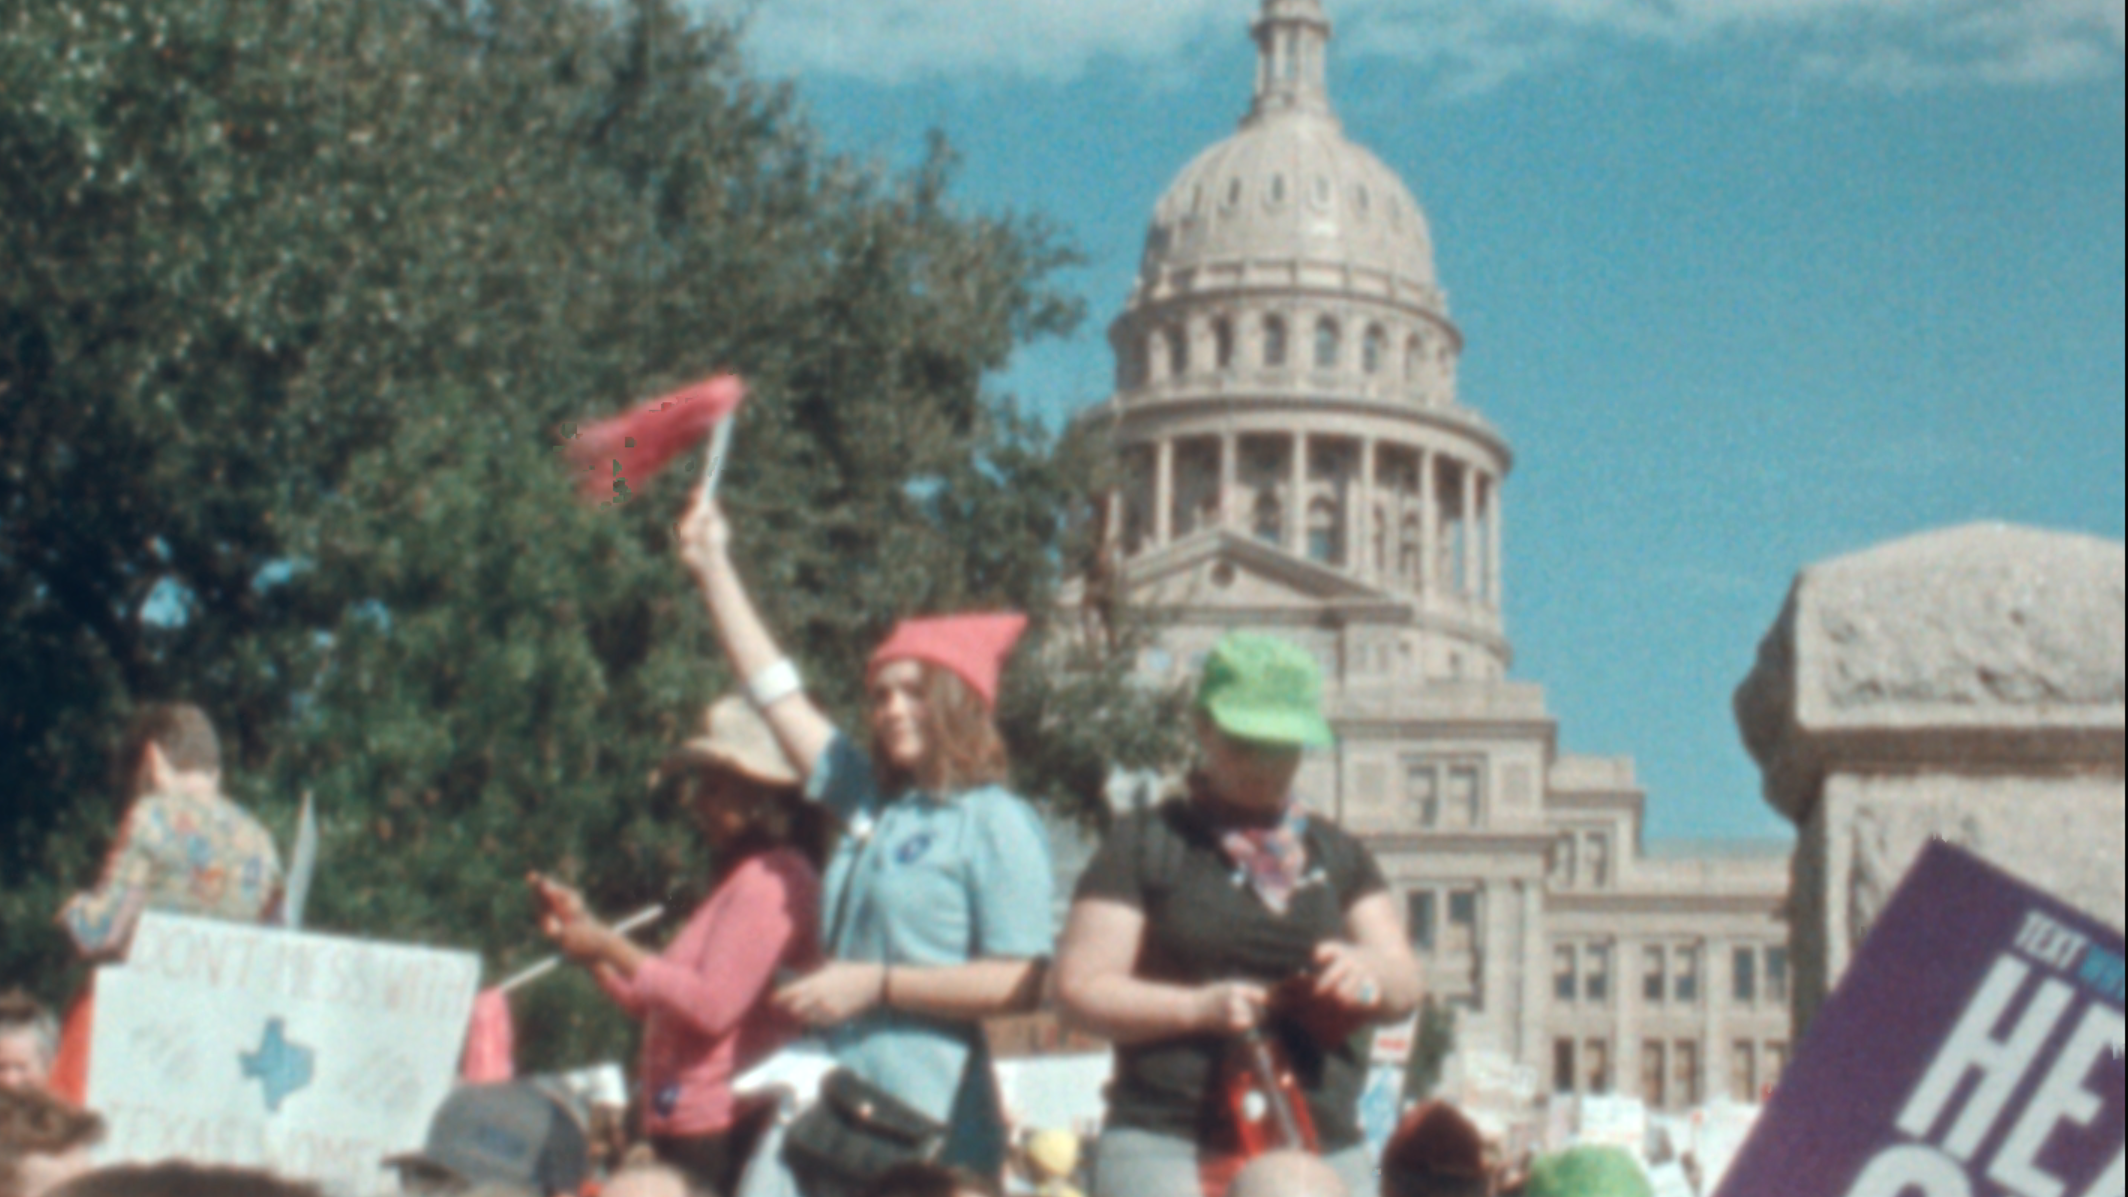 Inauguration & Women's Marches - Austin - Jan 2017